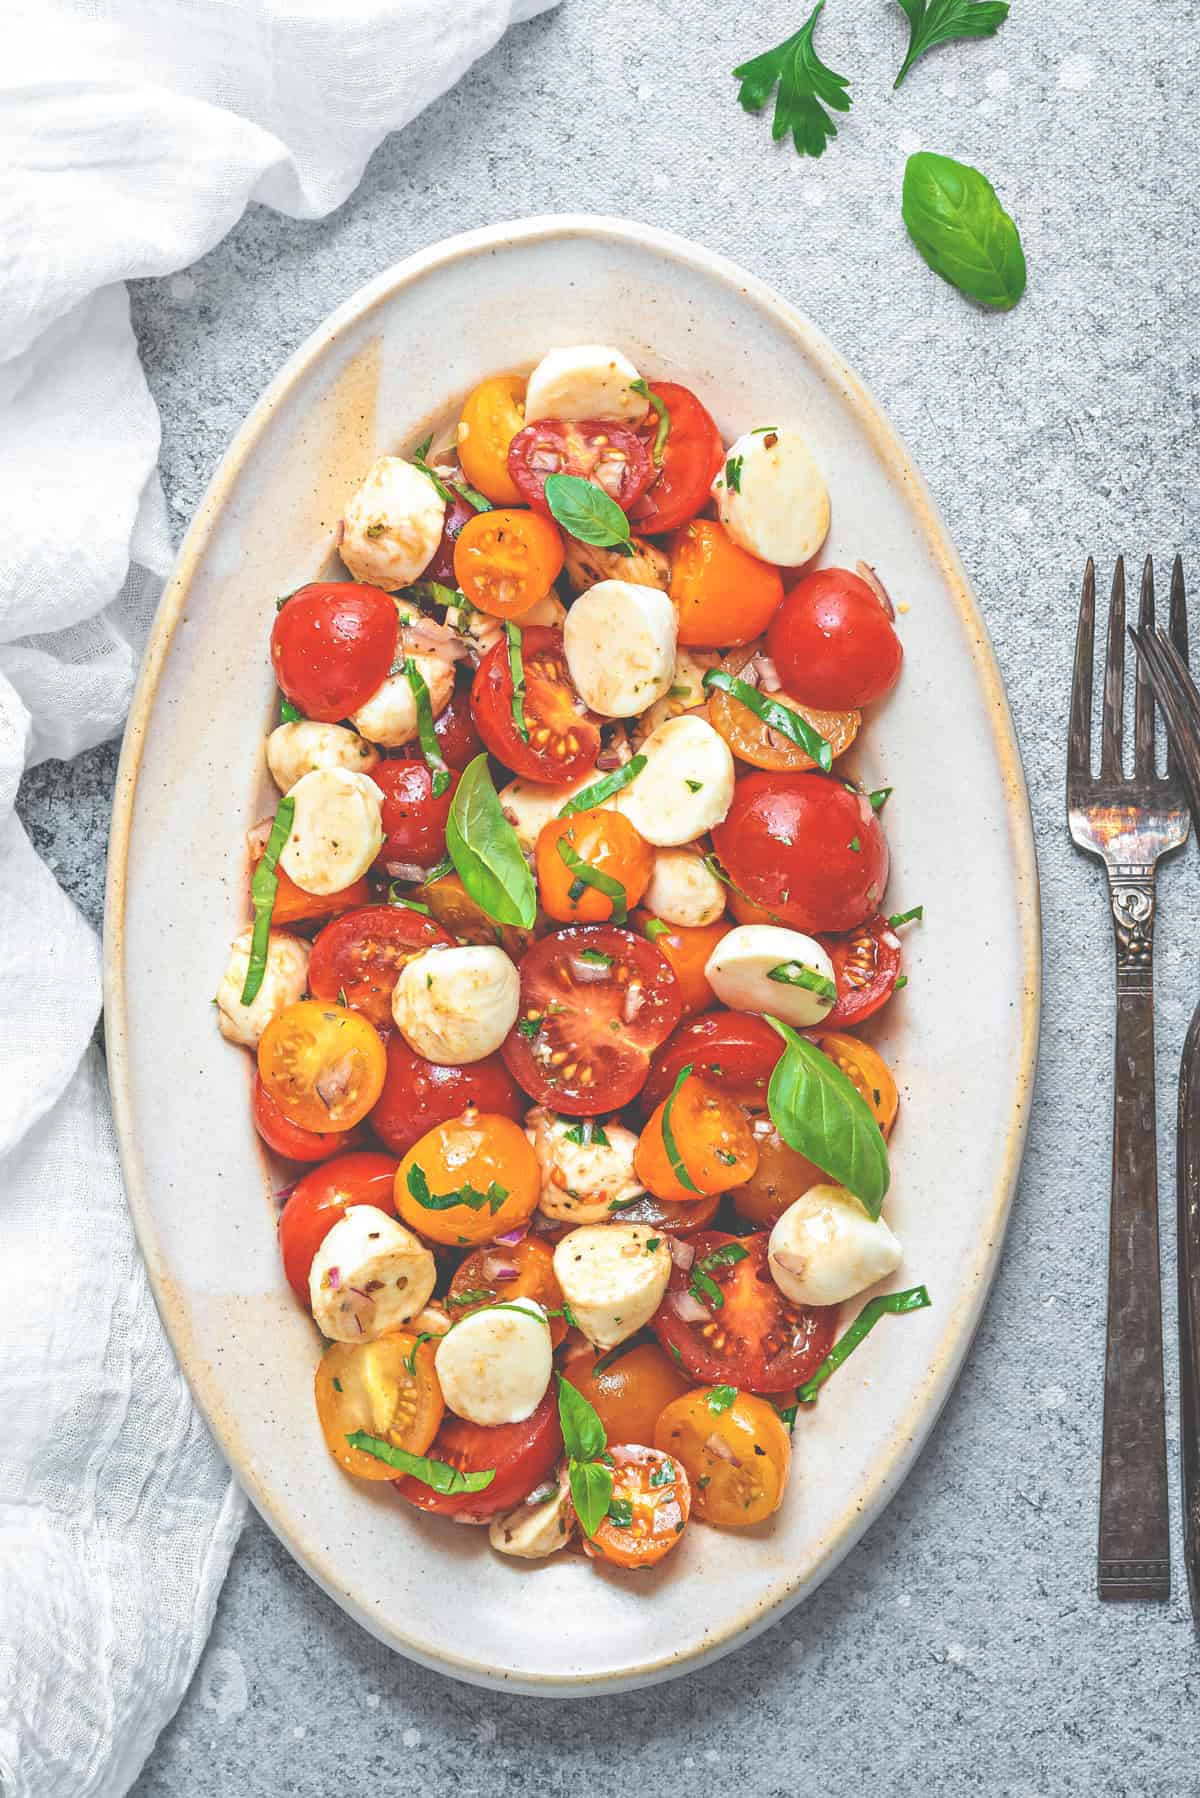 oblong neutral colored serving plate filled with tomato mozzarella salad and garnished with fresh basil